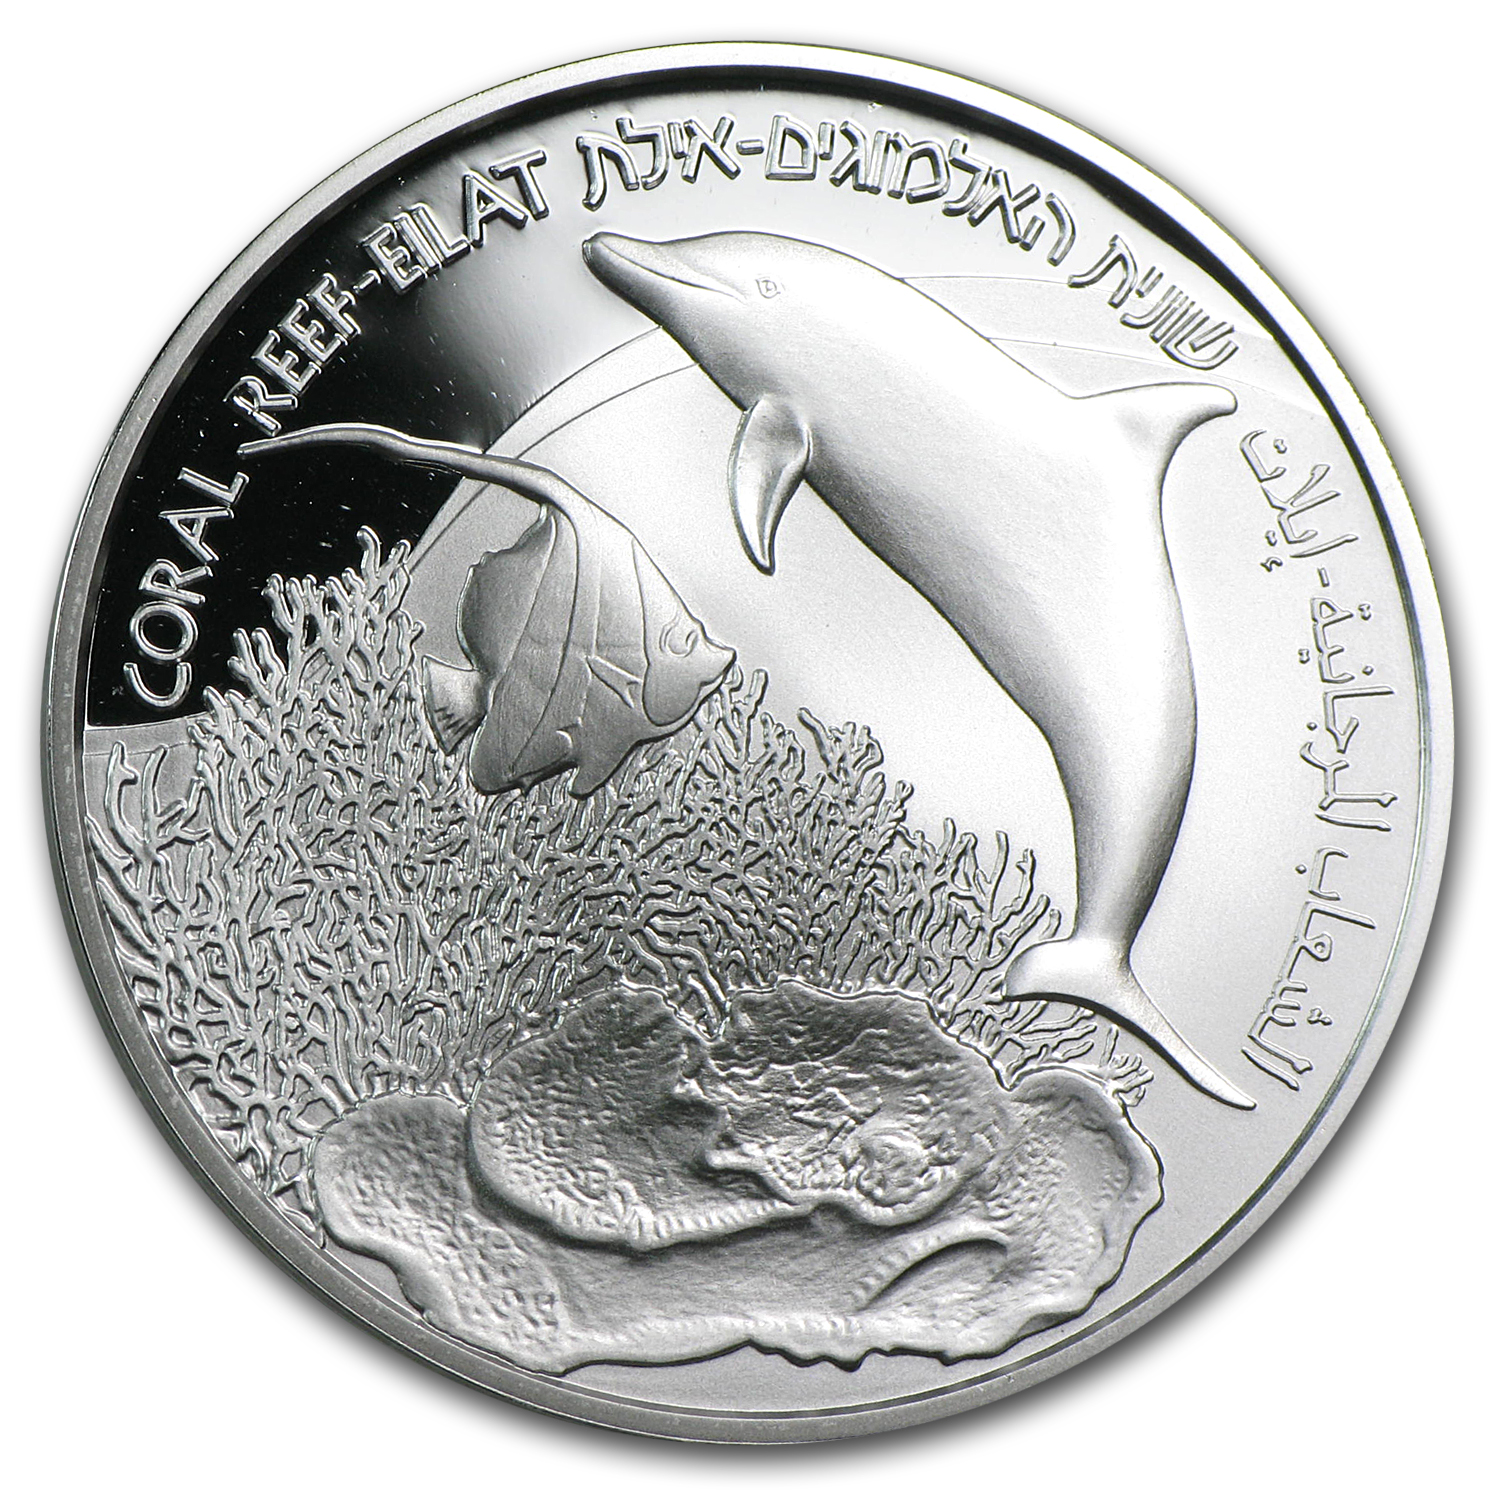 2012 Israel Coral Reef, Eilat Proof-Like Silver 1 NIS Coin